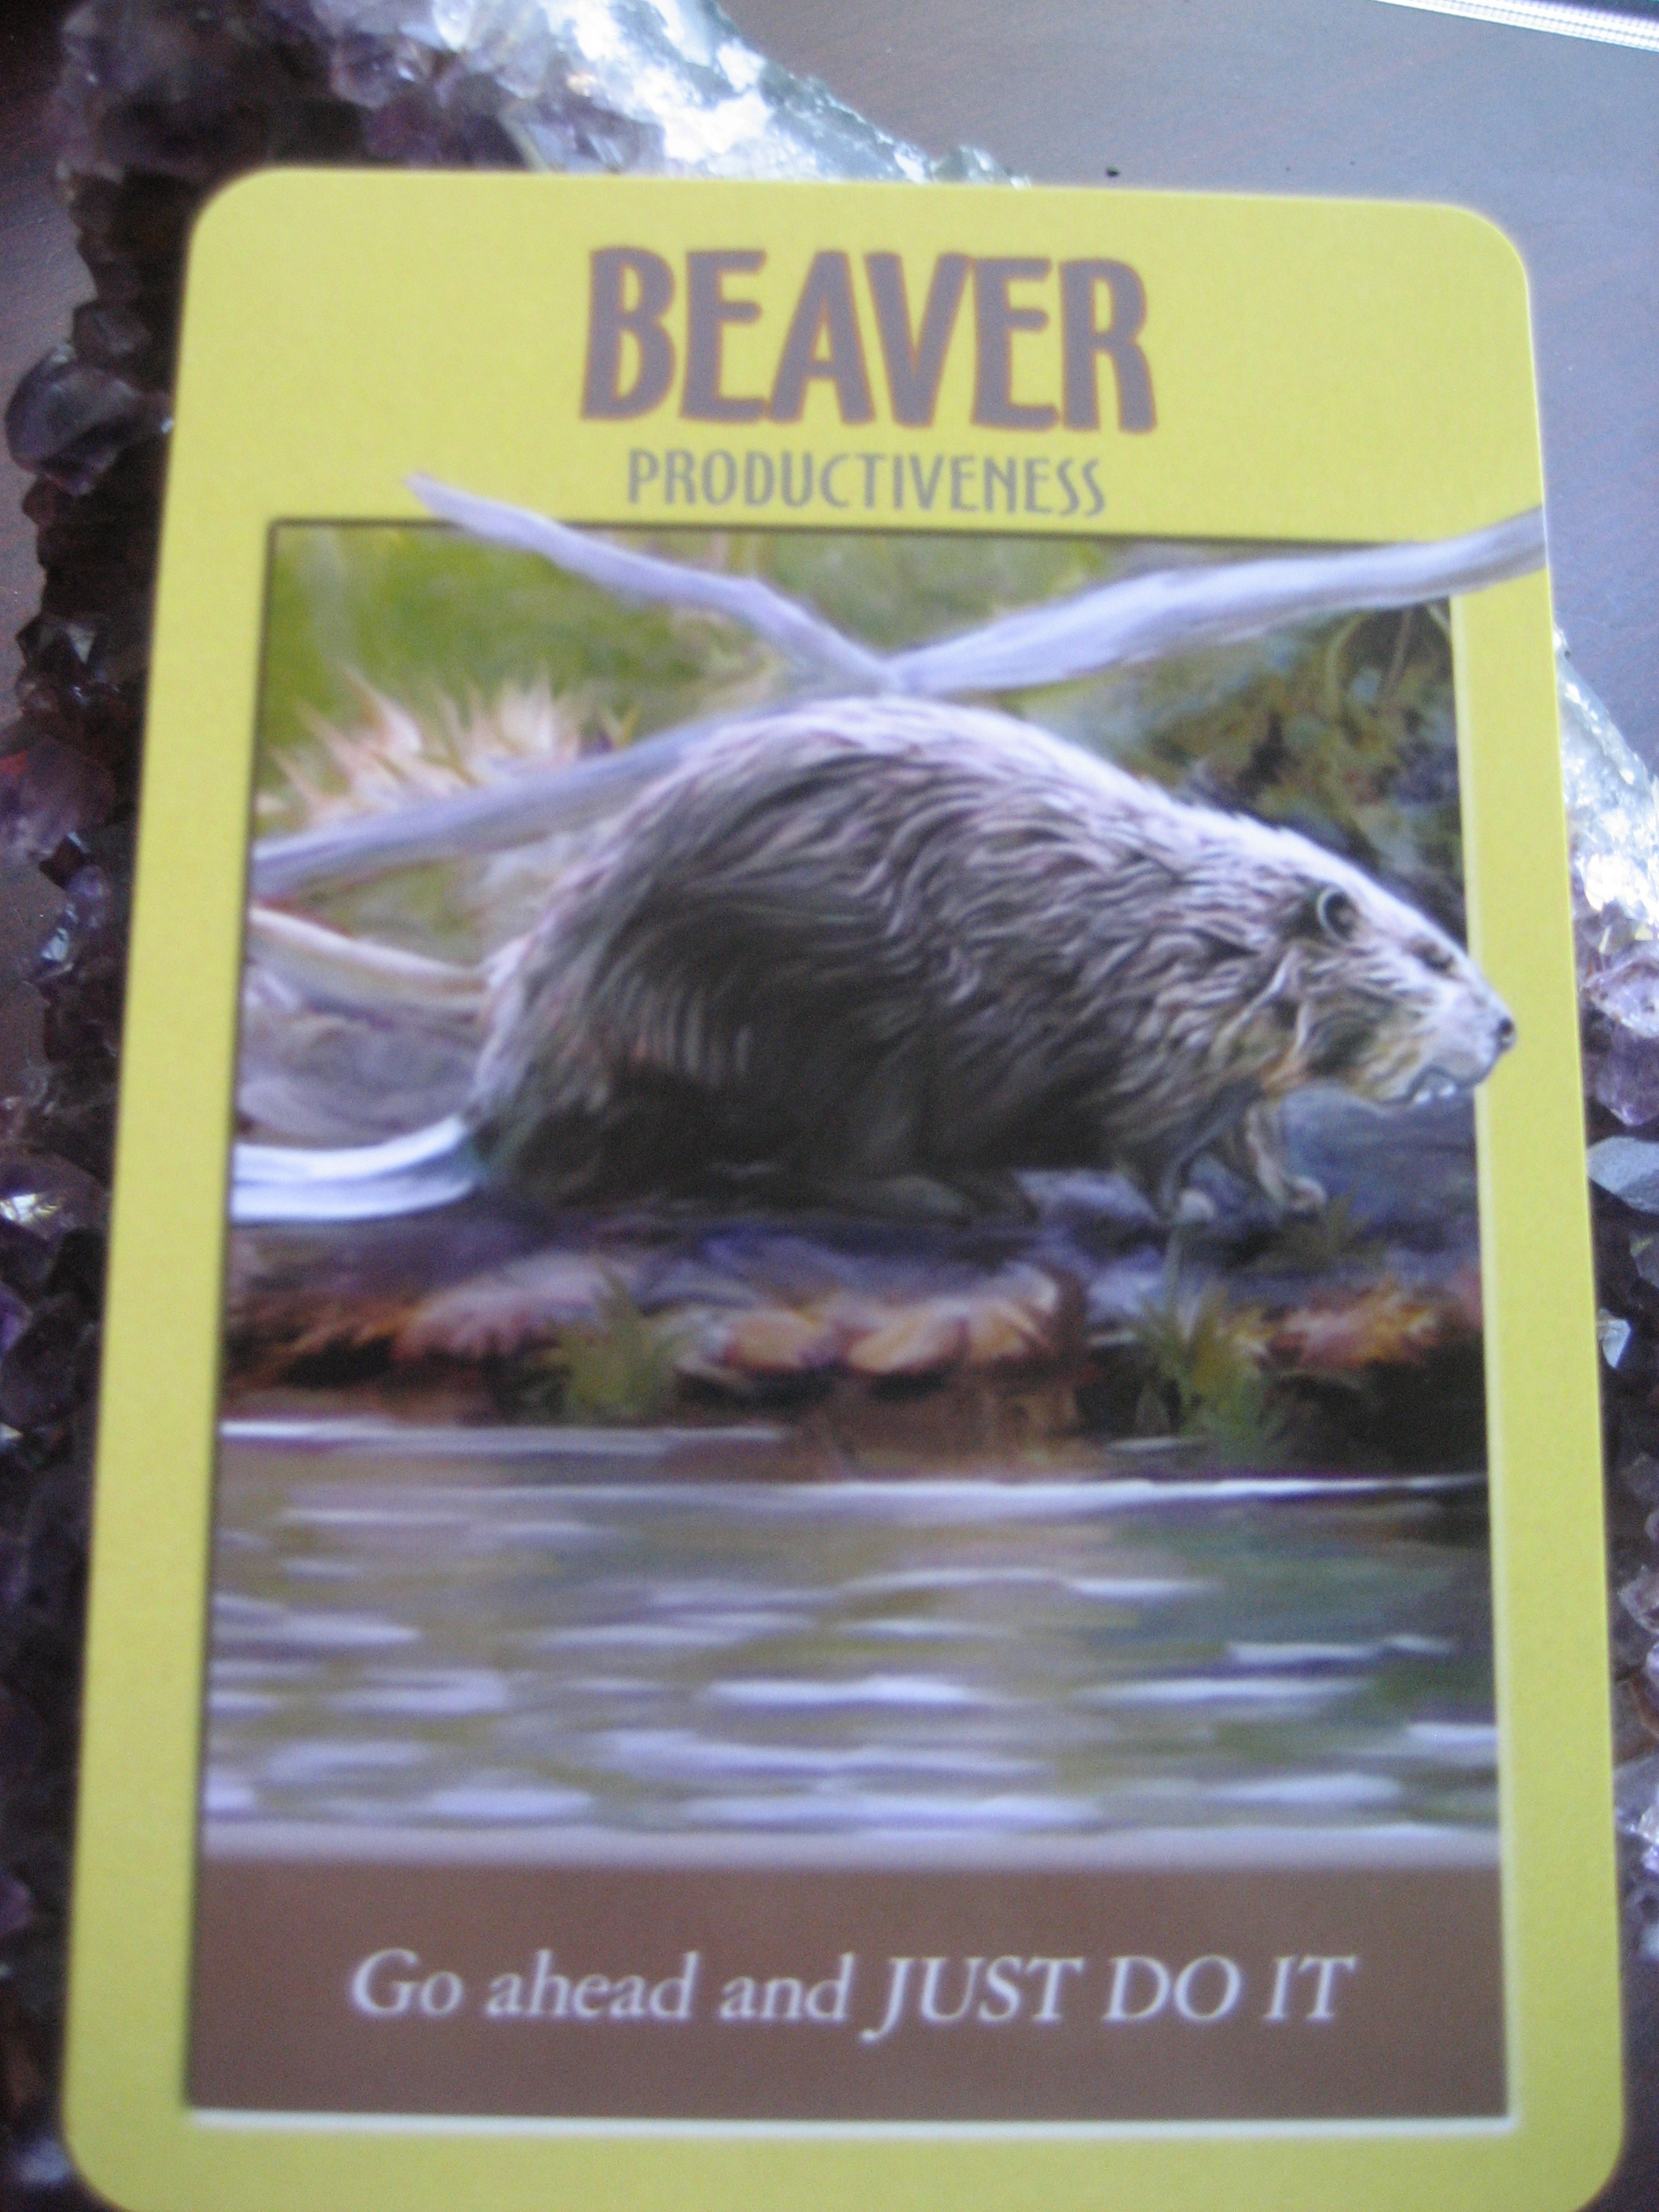 Power Animal of the Week – BEAVER